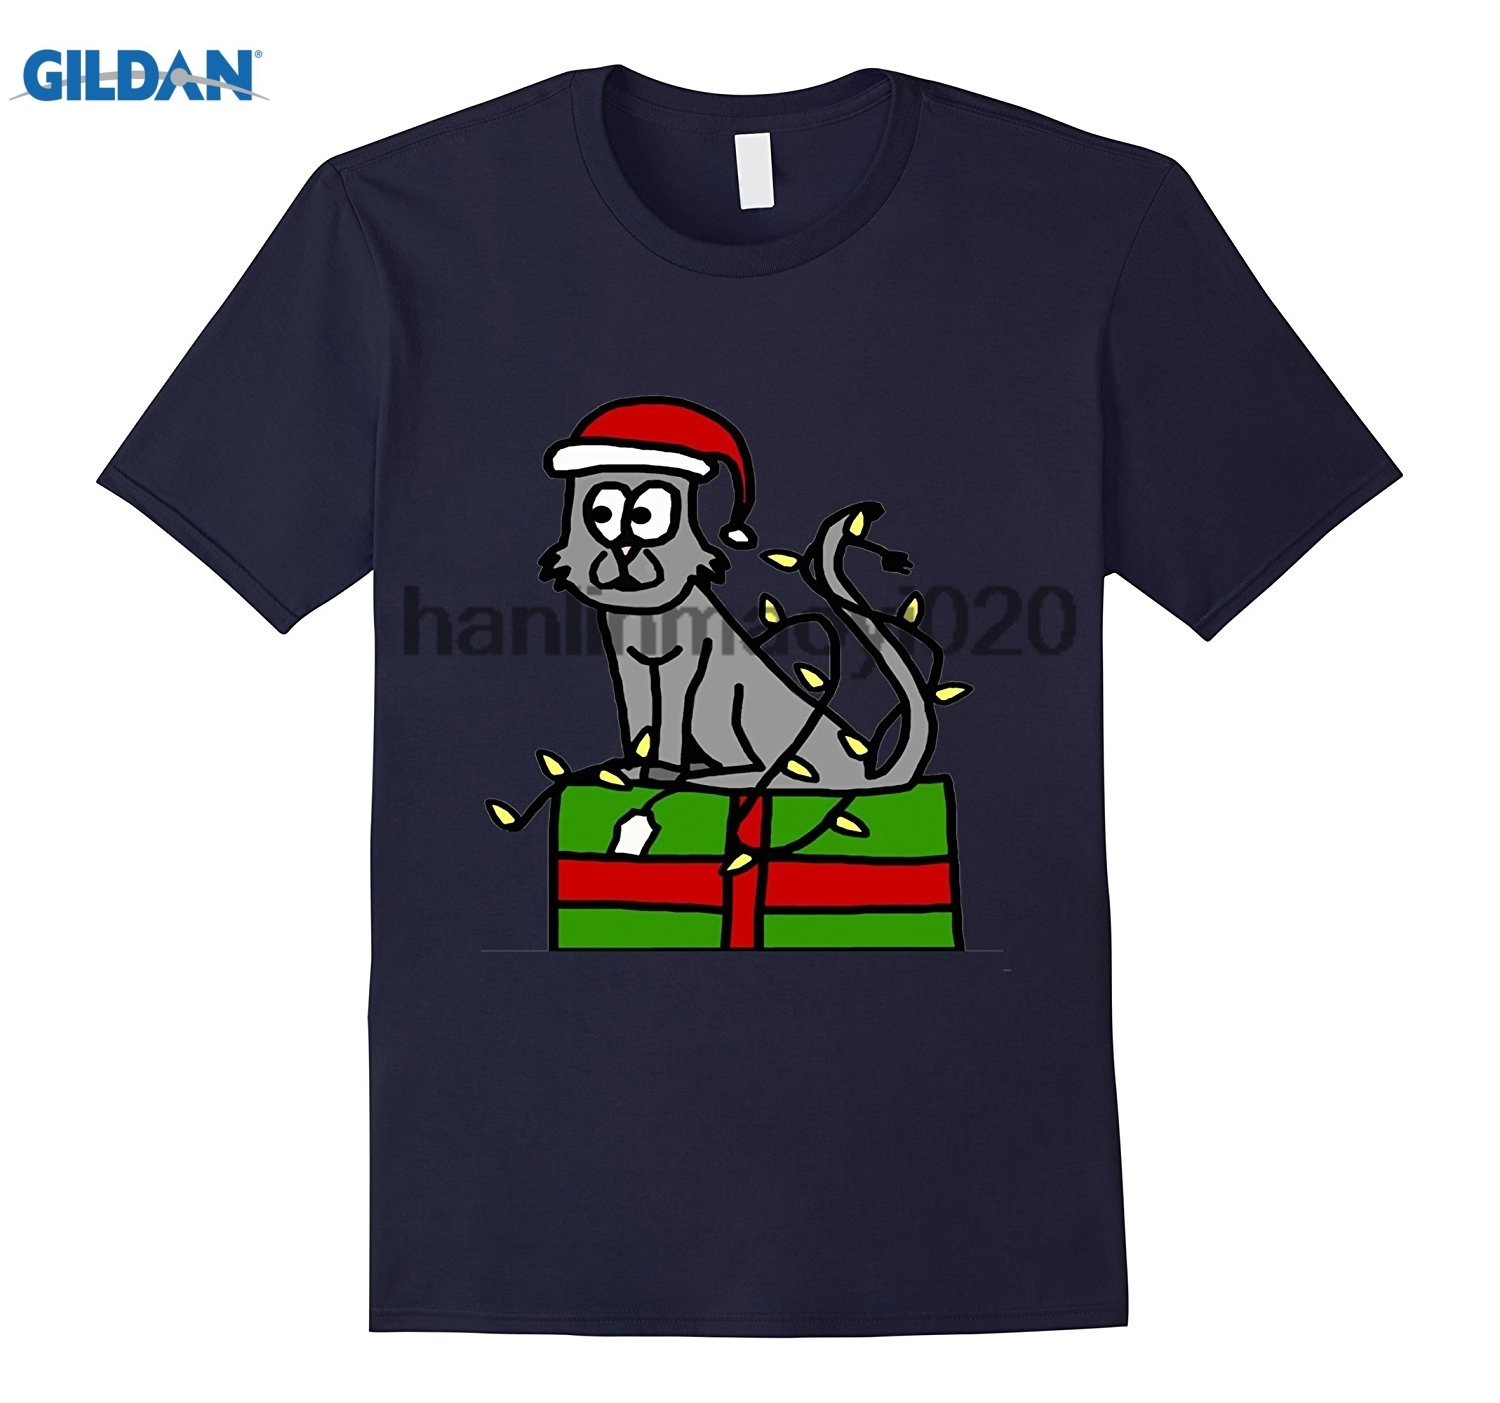 GILDAN CHRISTMAS GIFT AND T SHIRTS FOR MEN WOMEN BOYS GIRLS